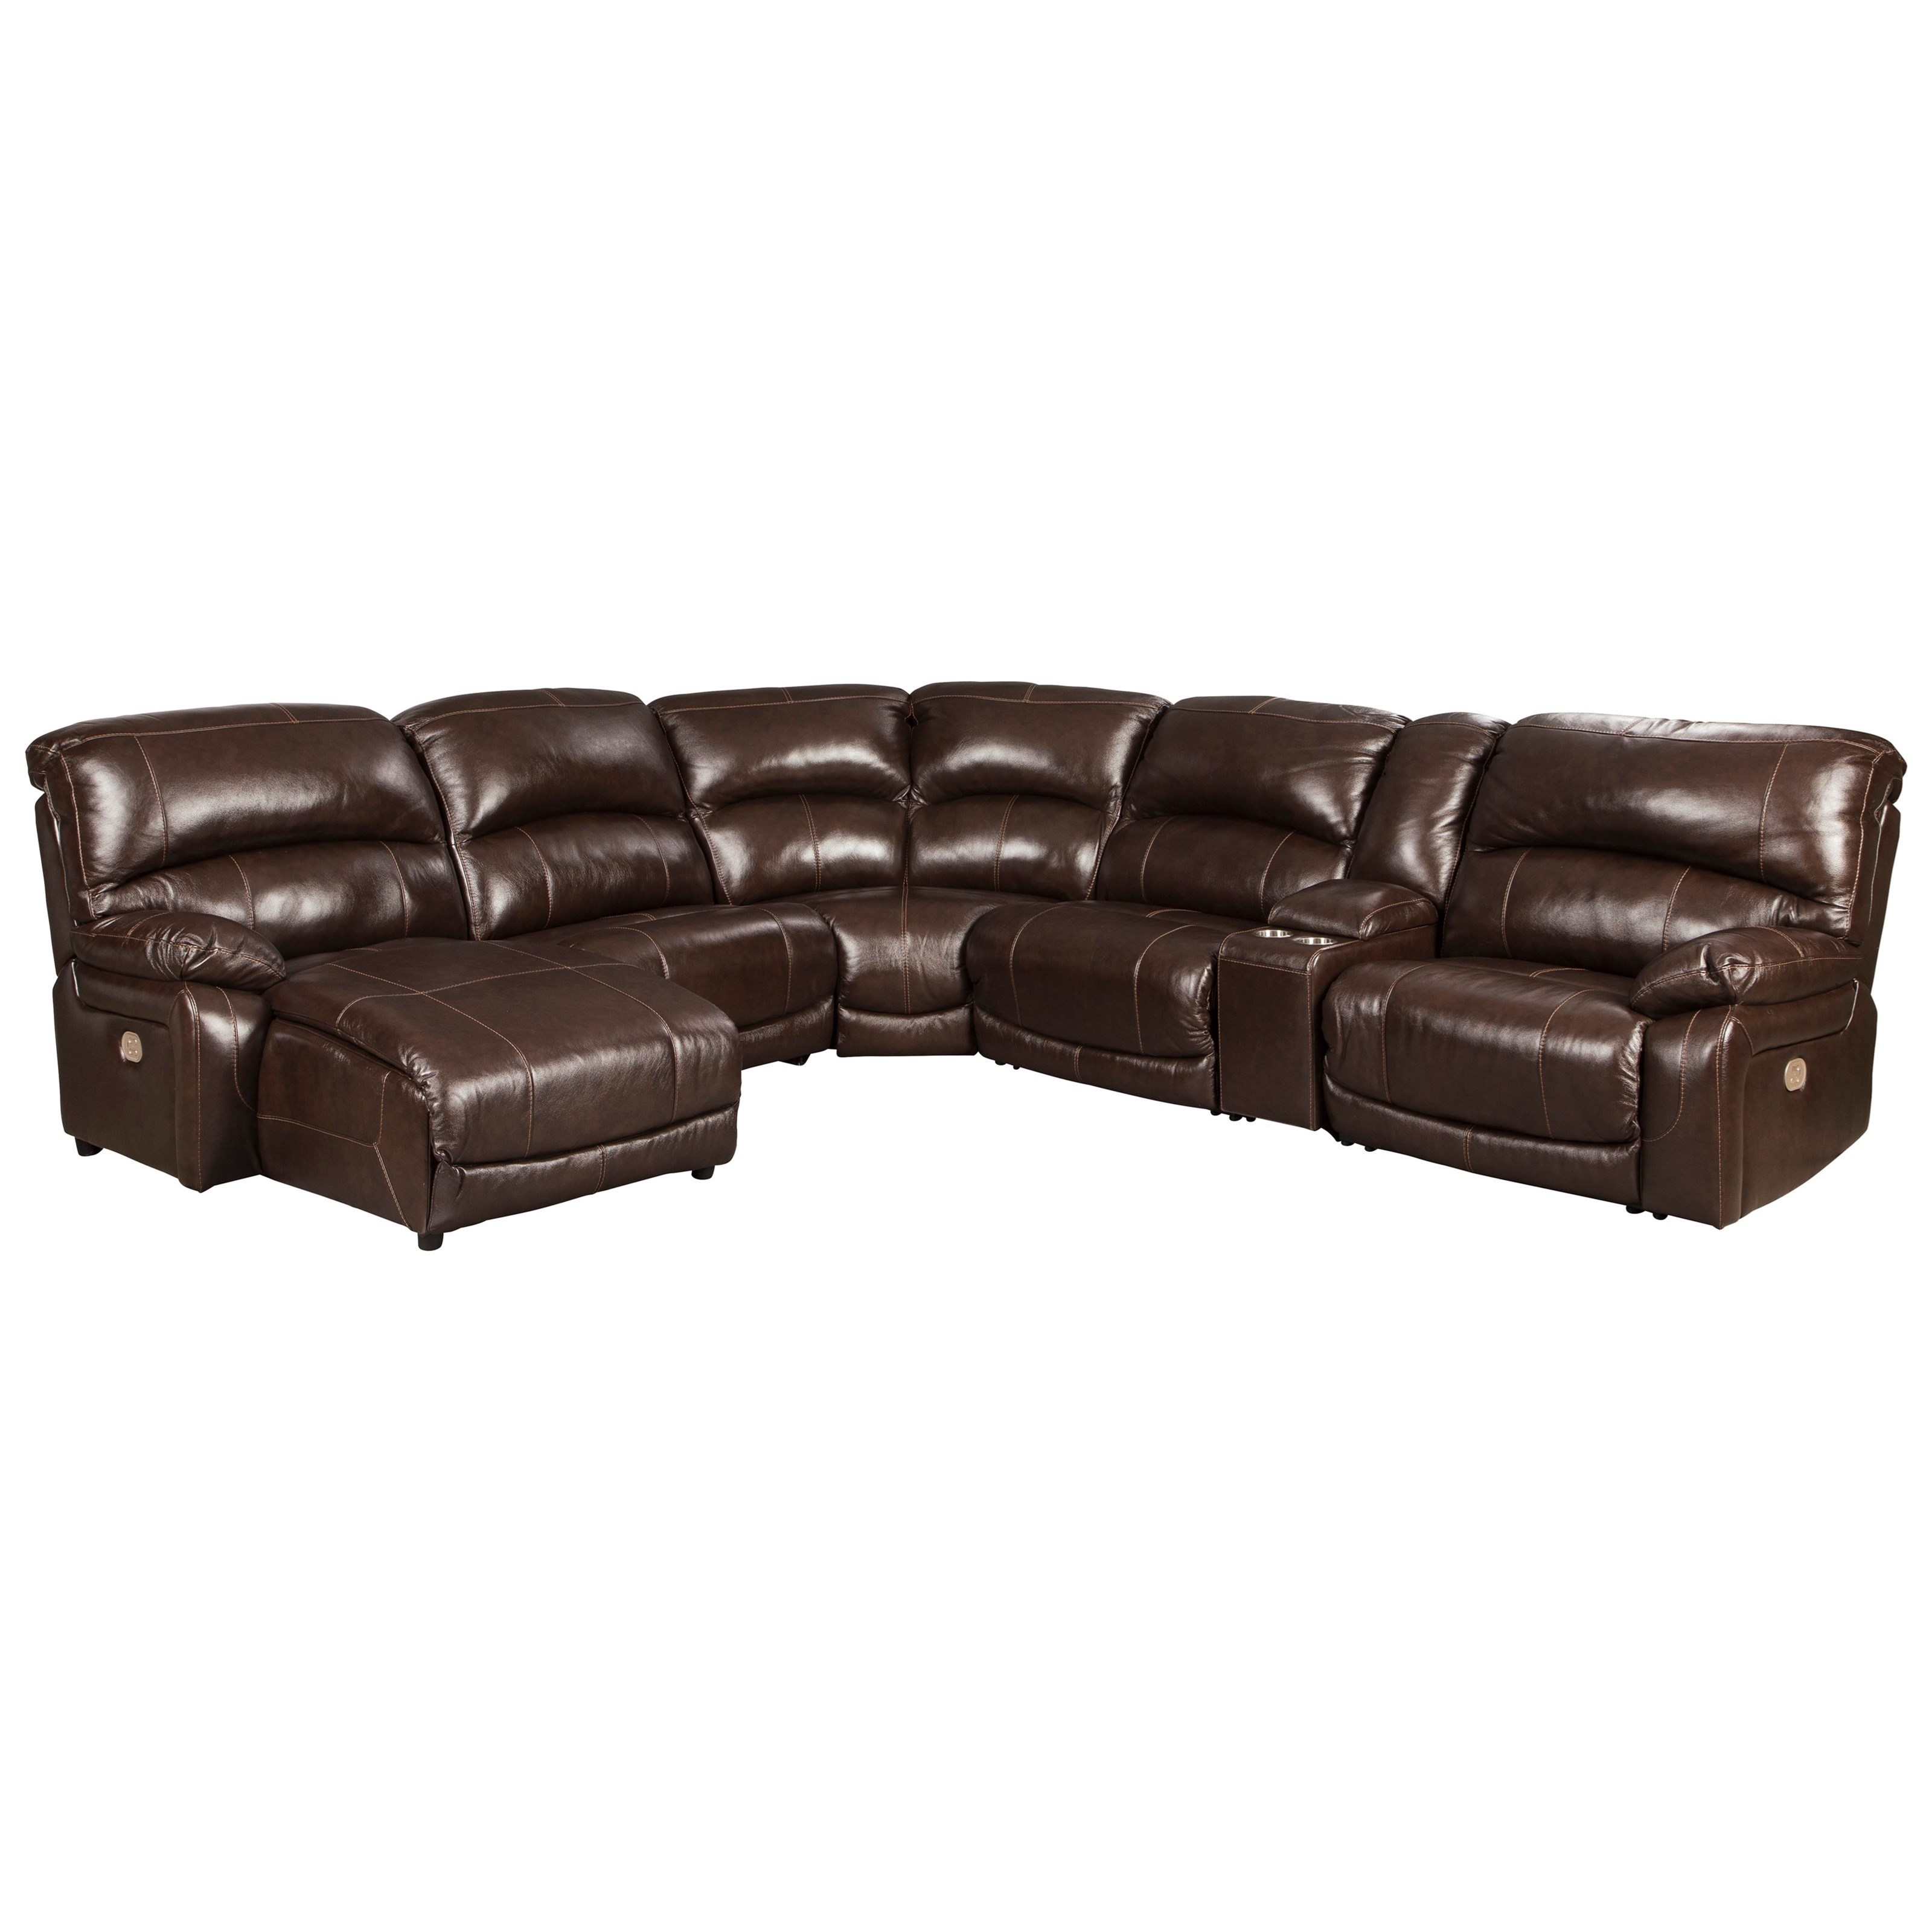 5-Piece Reclining Sectional with Chaise